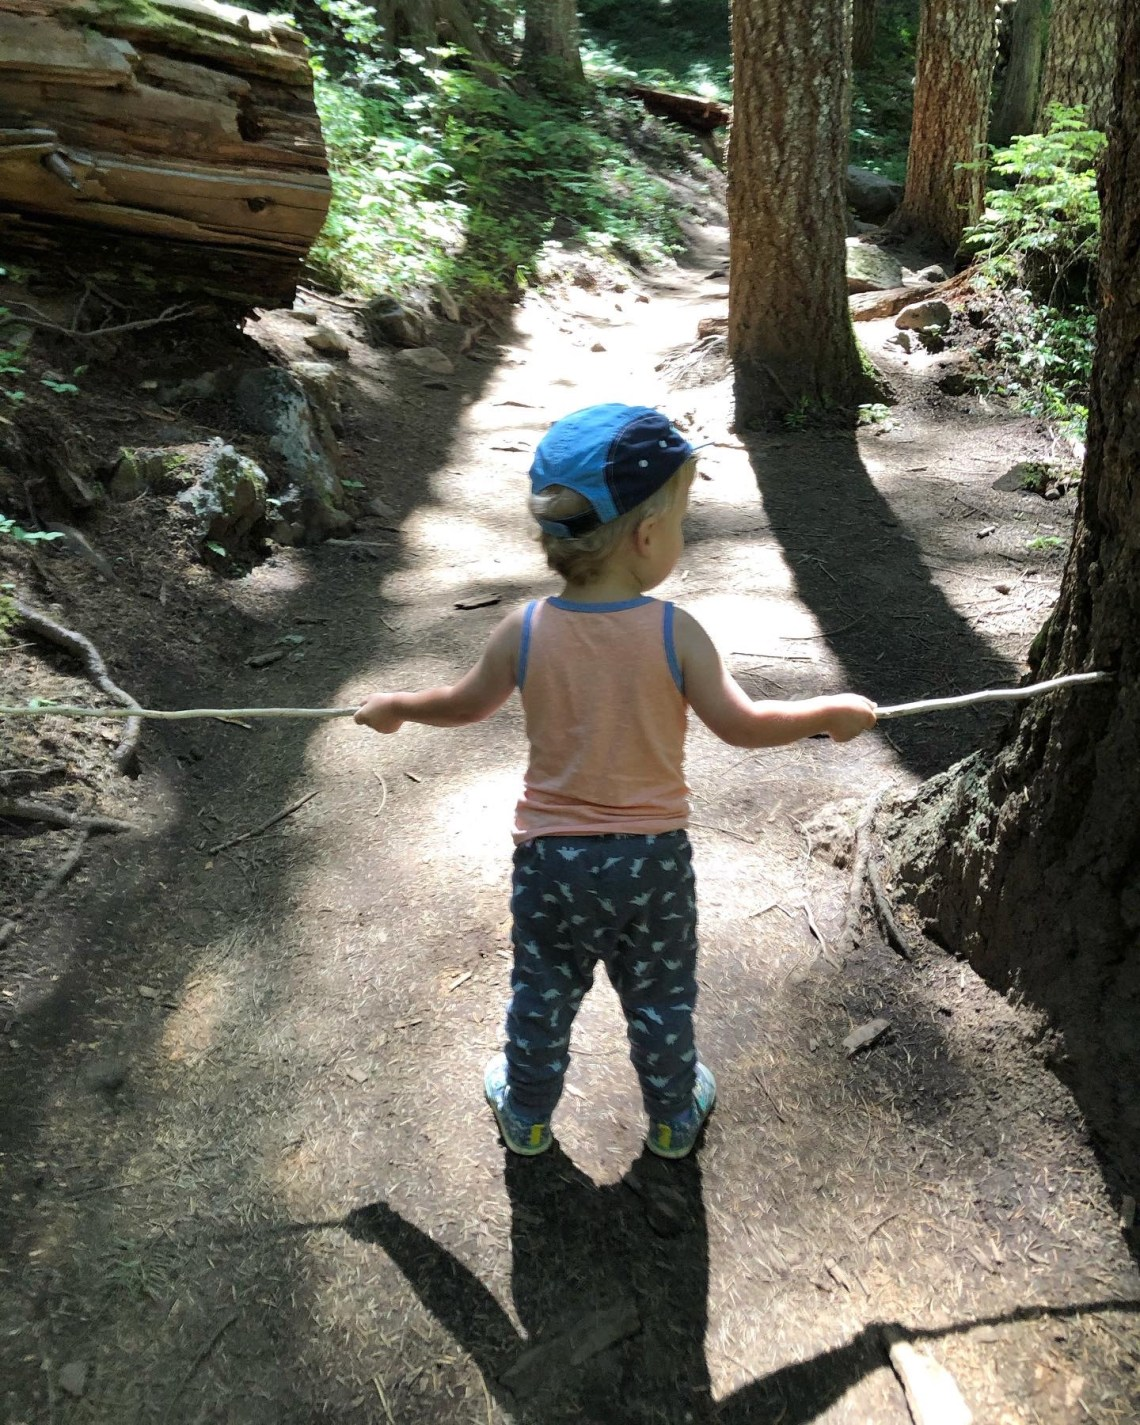 None shall pass - trail games for toddlers while hiking.